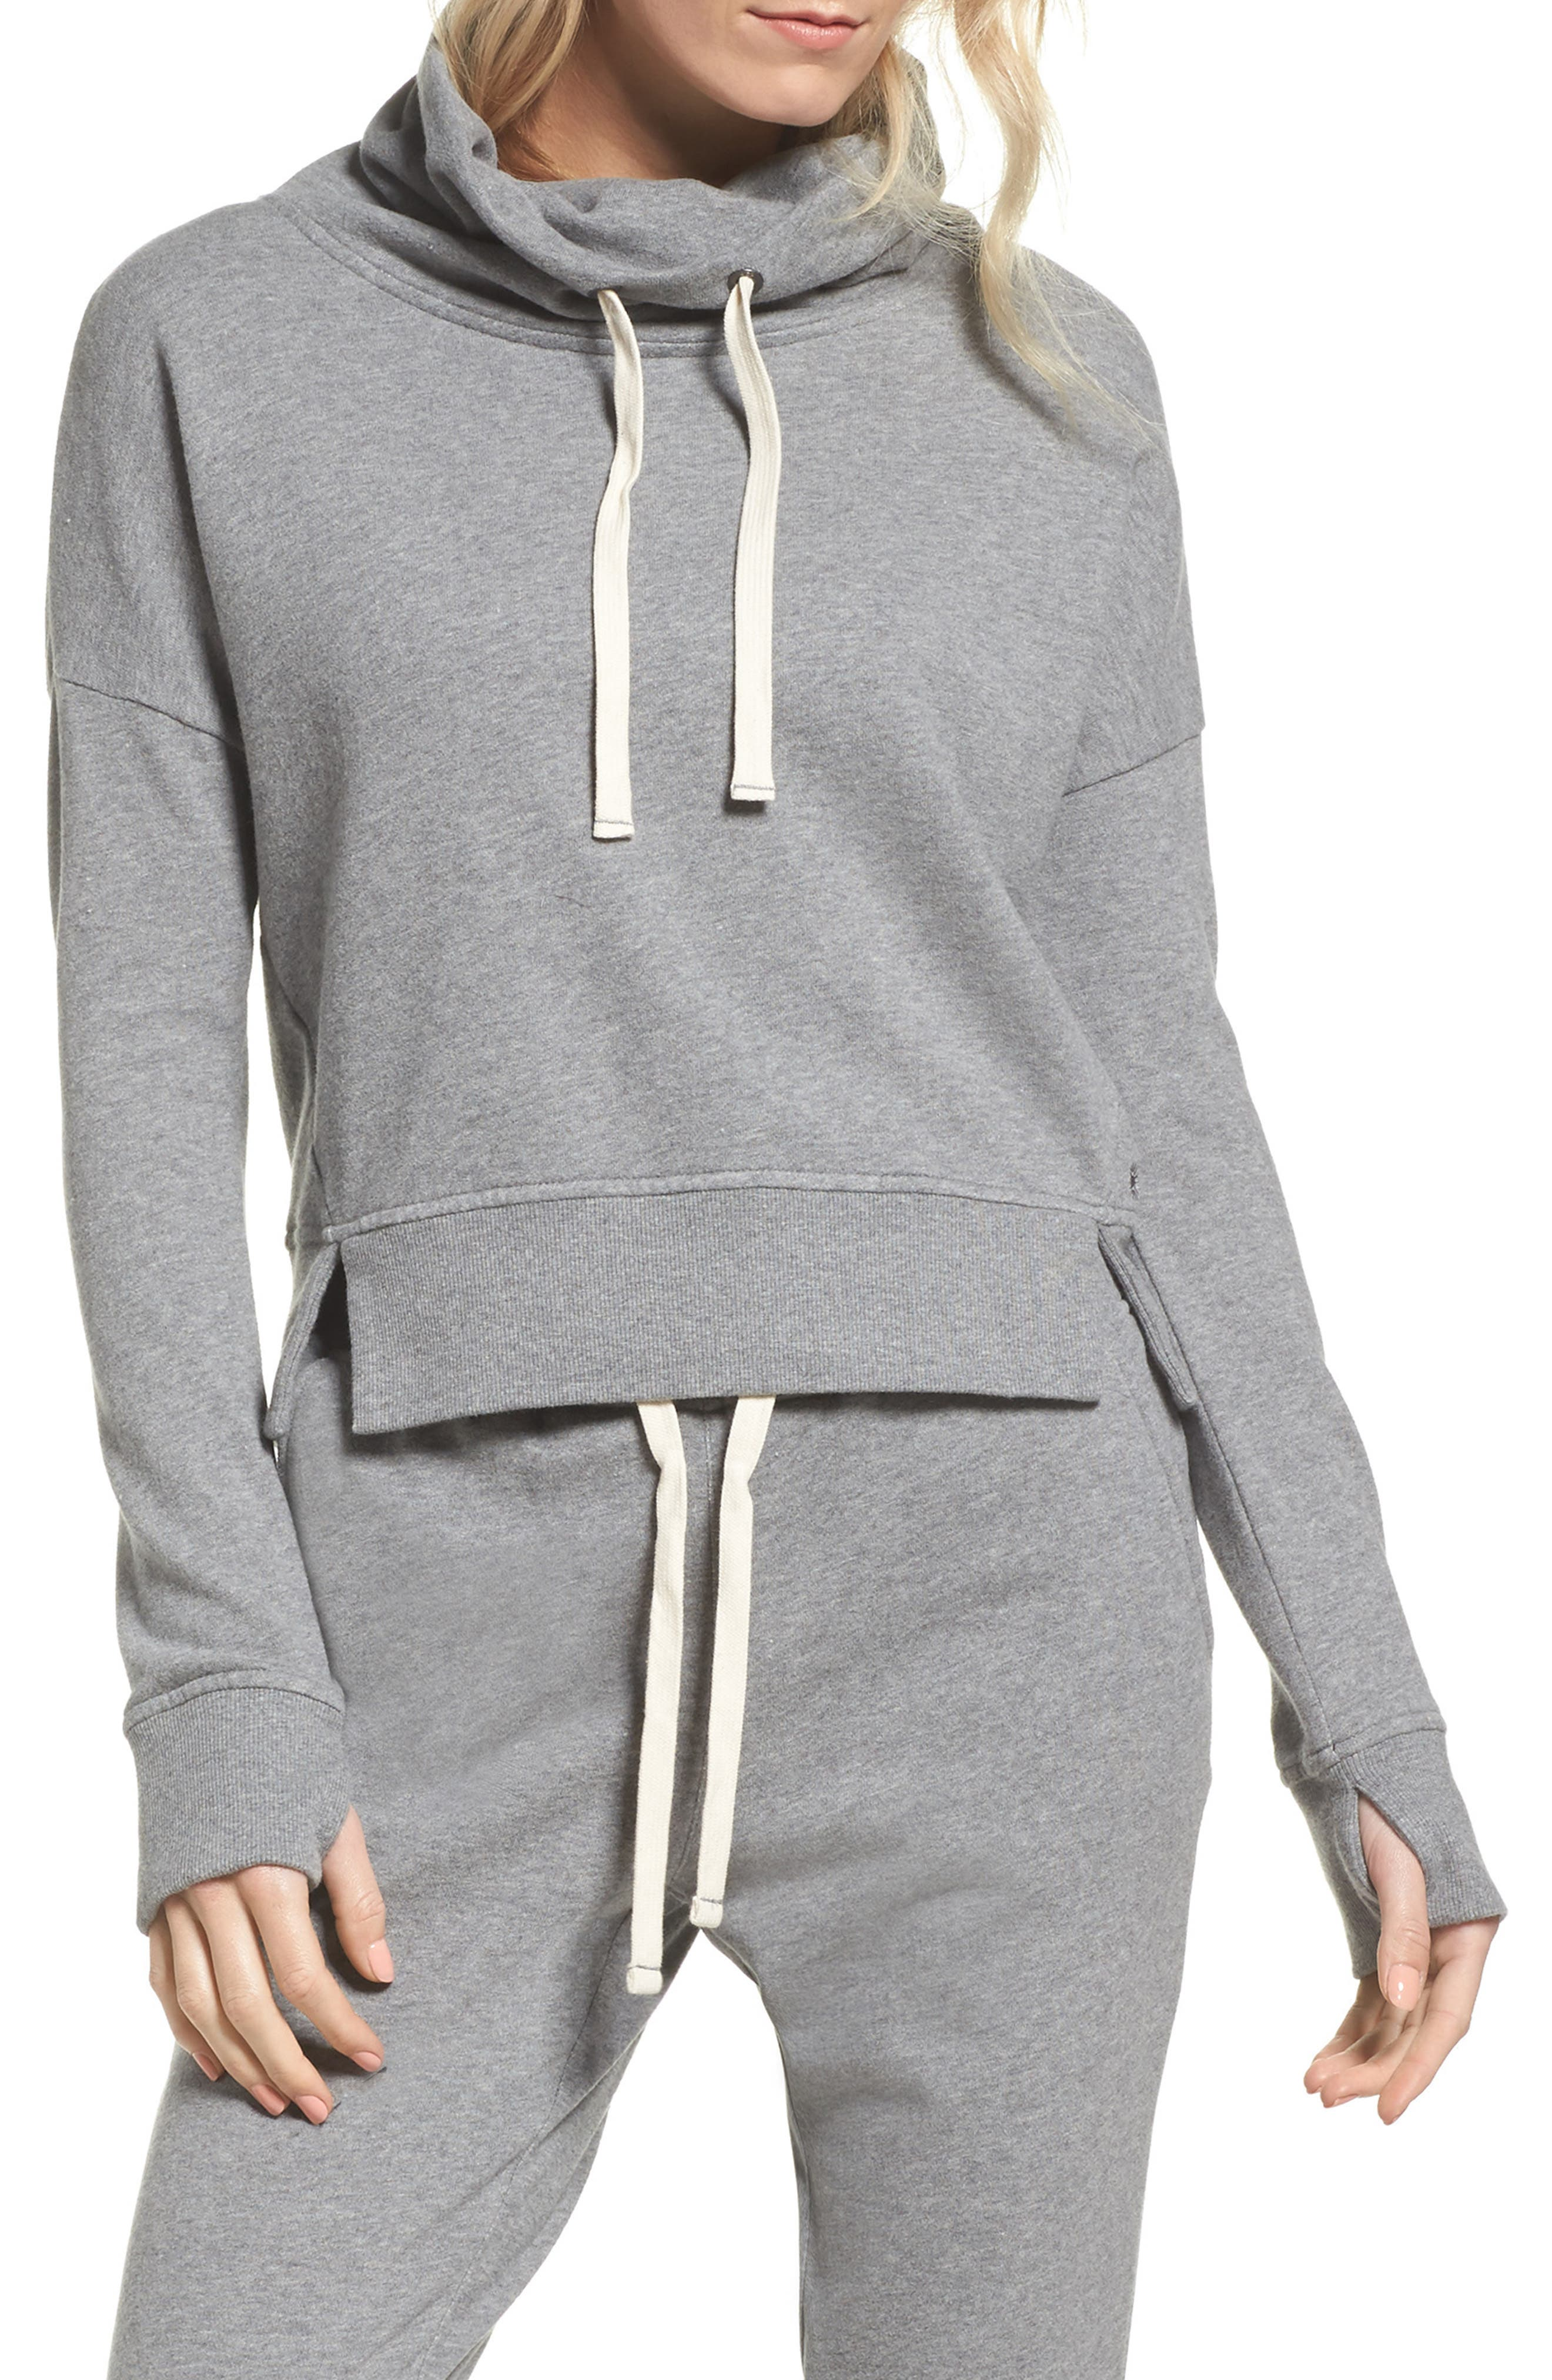 UGG<SUP>®</SUP>, Miya Funnel Neck Sweatshirt, Main thumbnail 1, color, GREY HEATHER